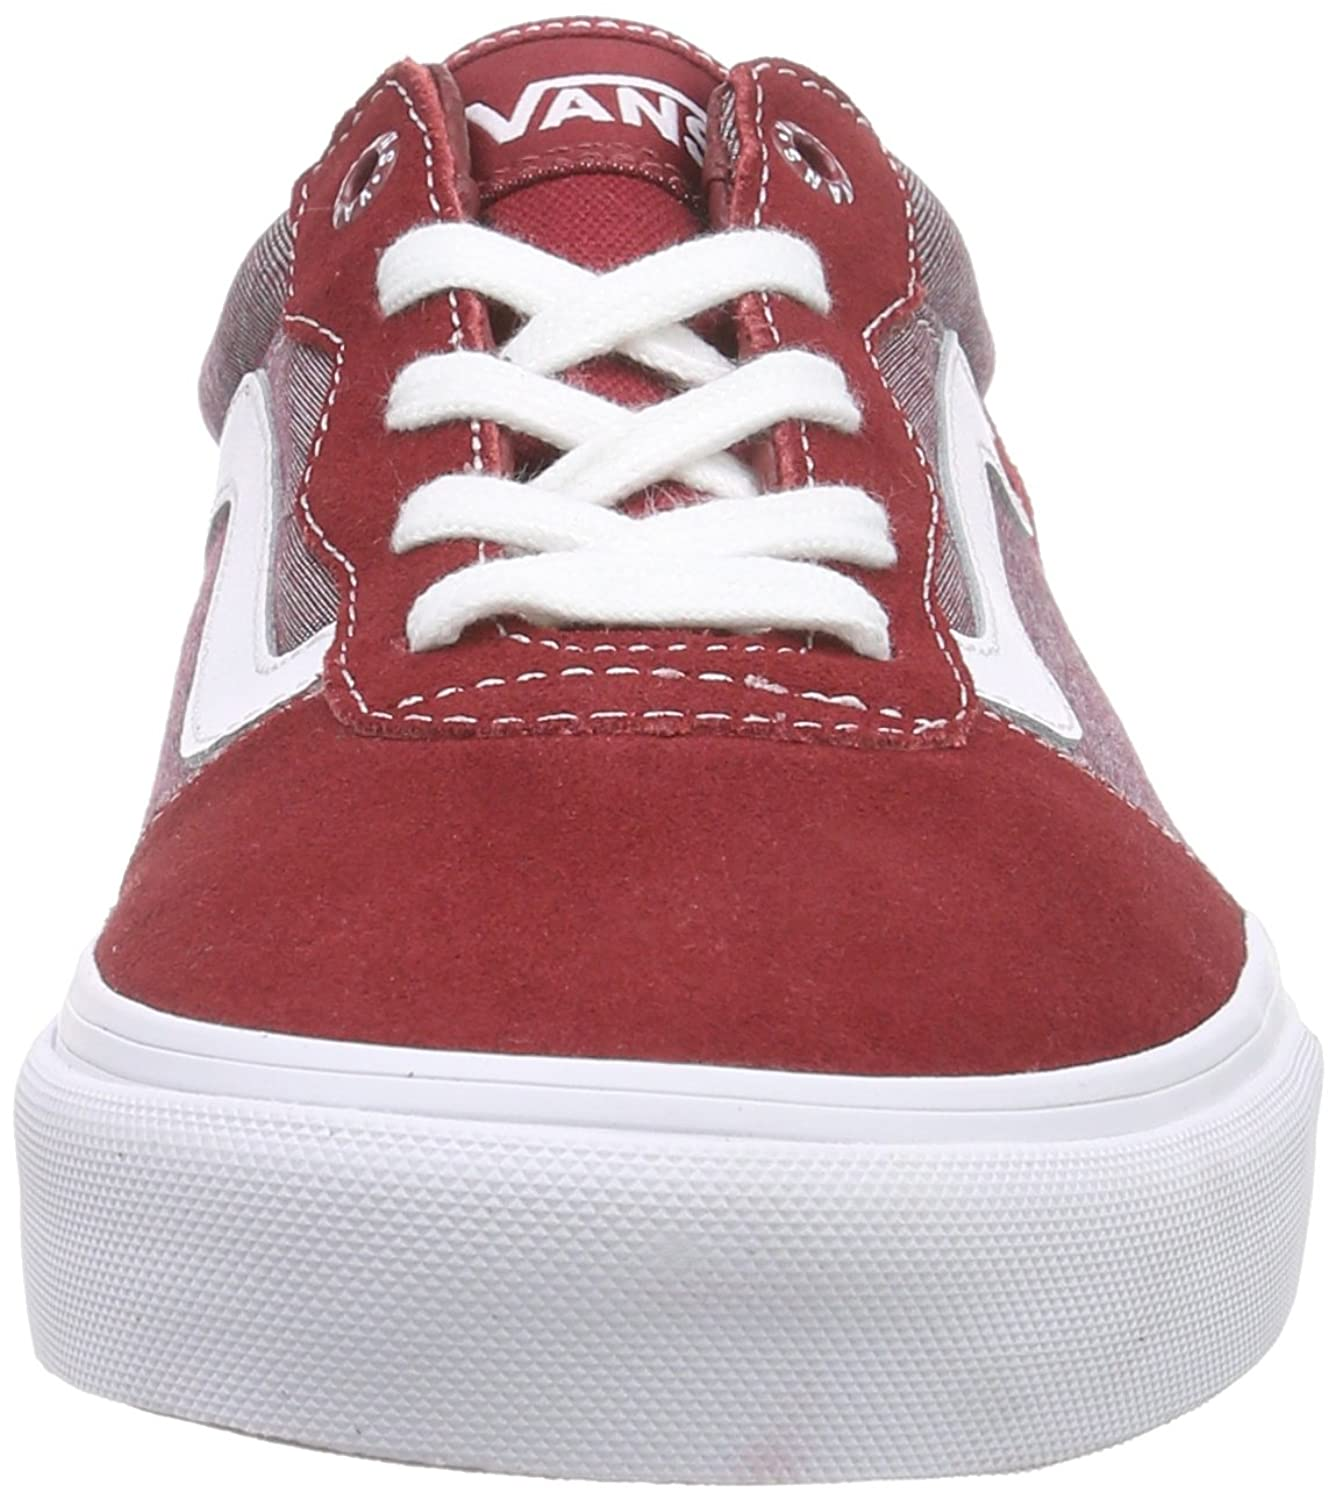 Vansm Chambray Milton - Chaussures Homme, Rouge, Taille 44.5